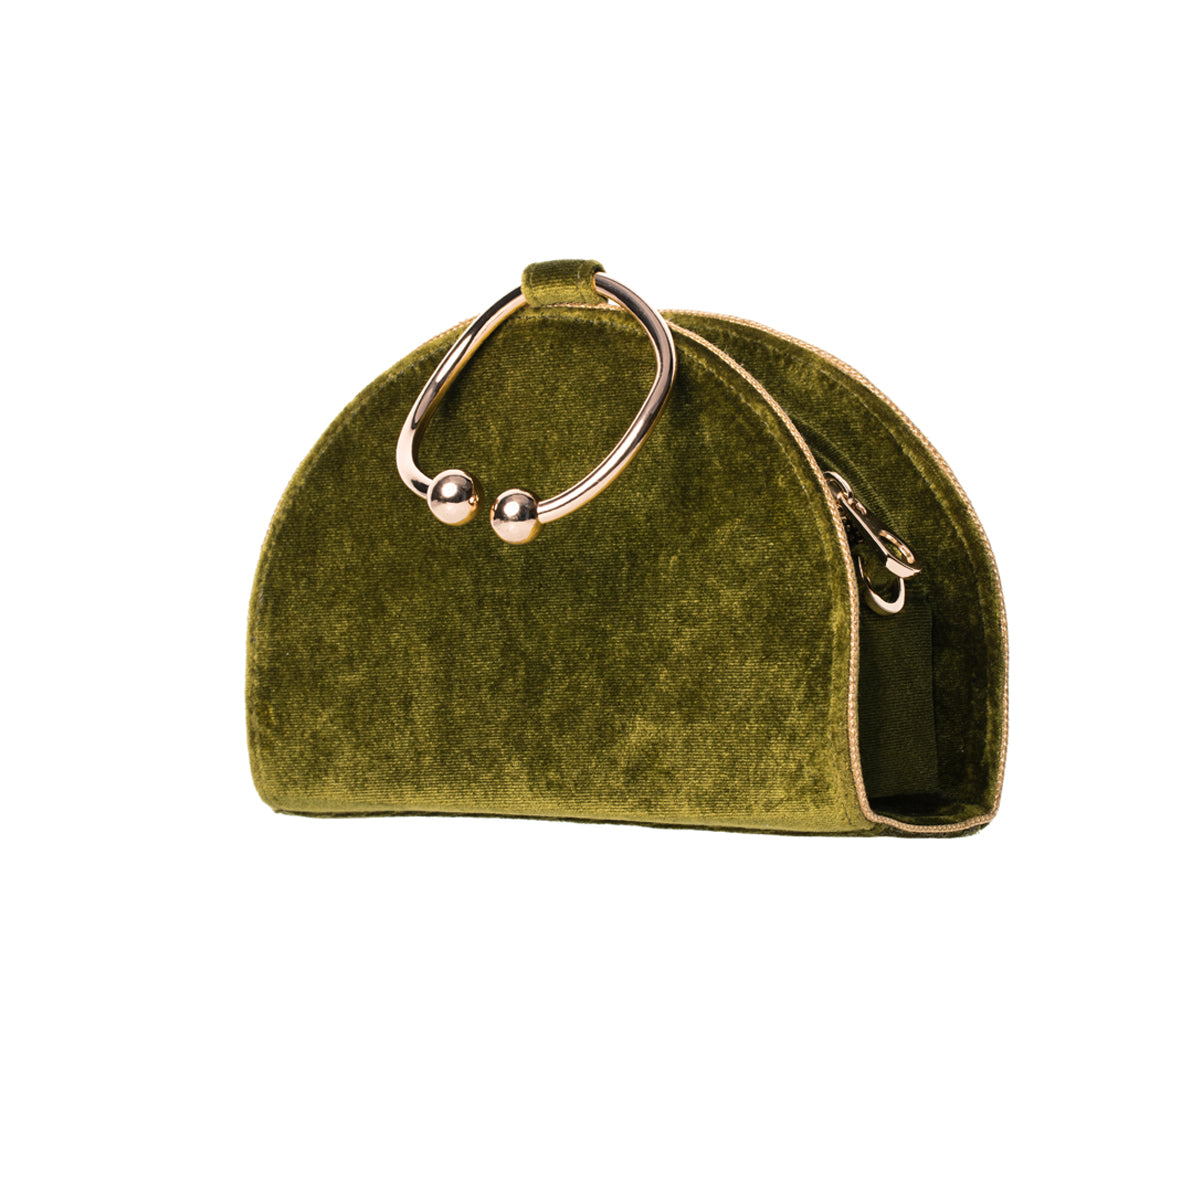 Chelsea Green Velvet Clutch Bag